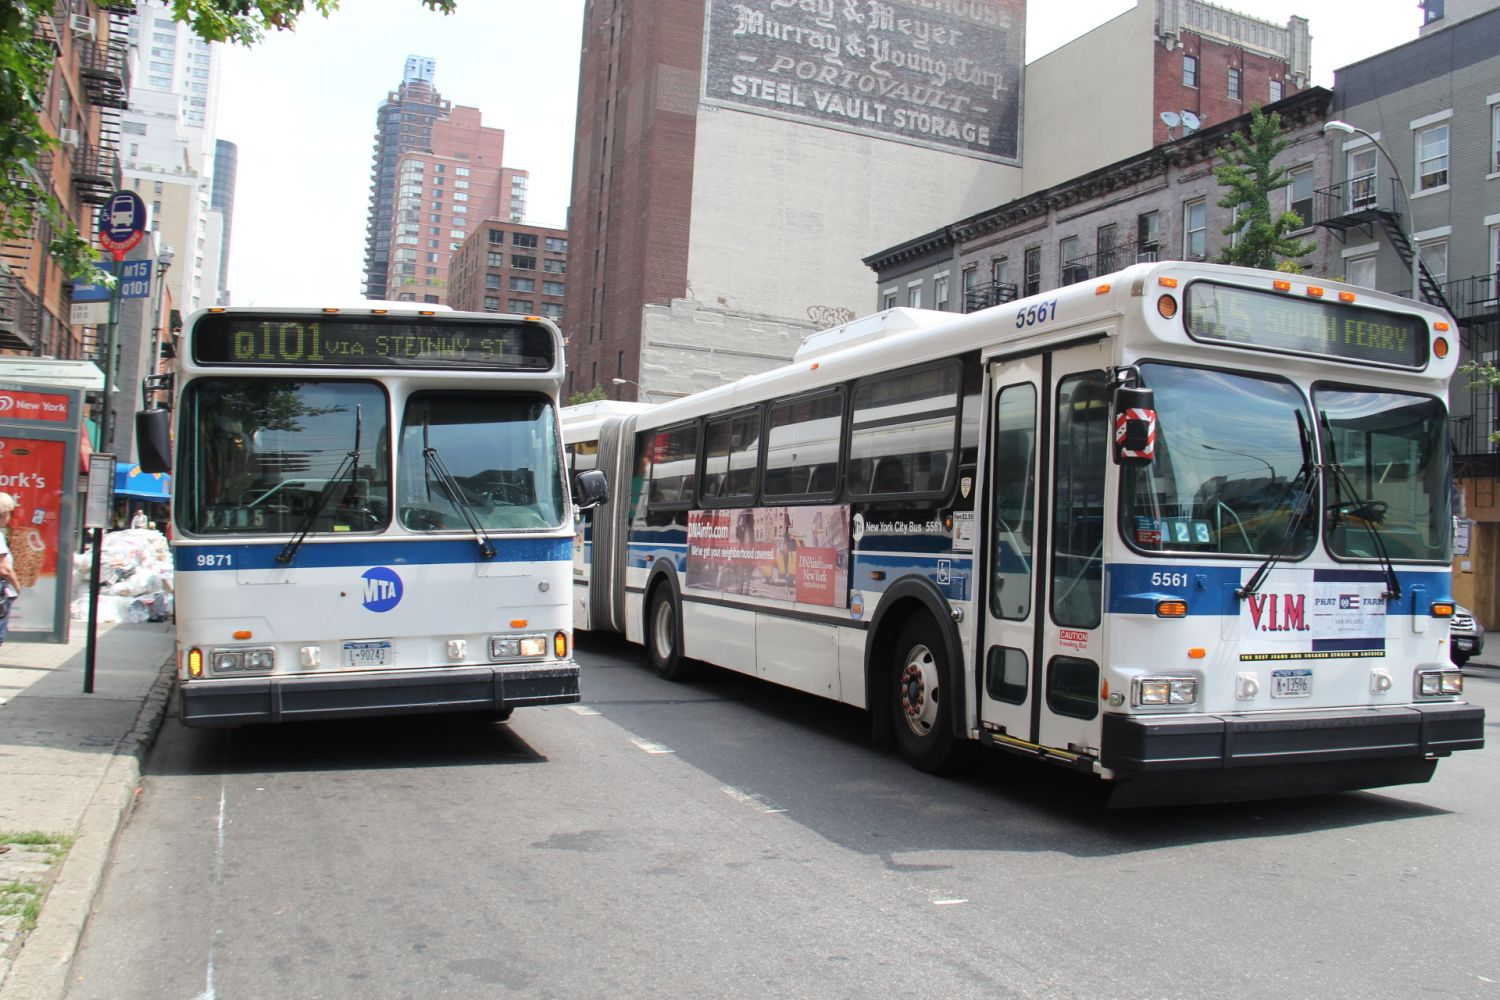 1999 Orion V CNG #9871 Q101 and 2003 D60HF #5561 M15 at 2nd Avenue and 61st Street